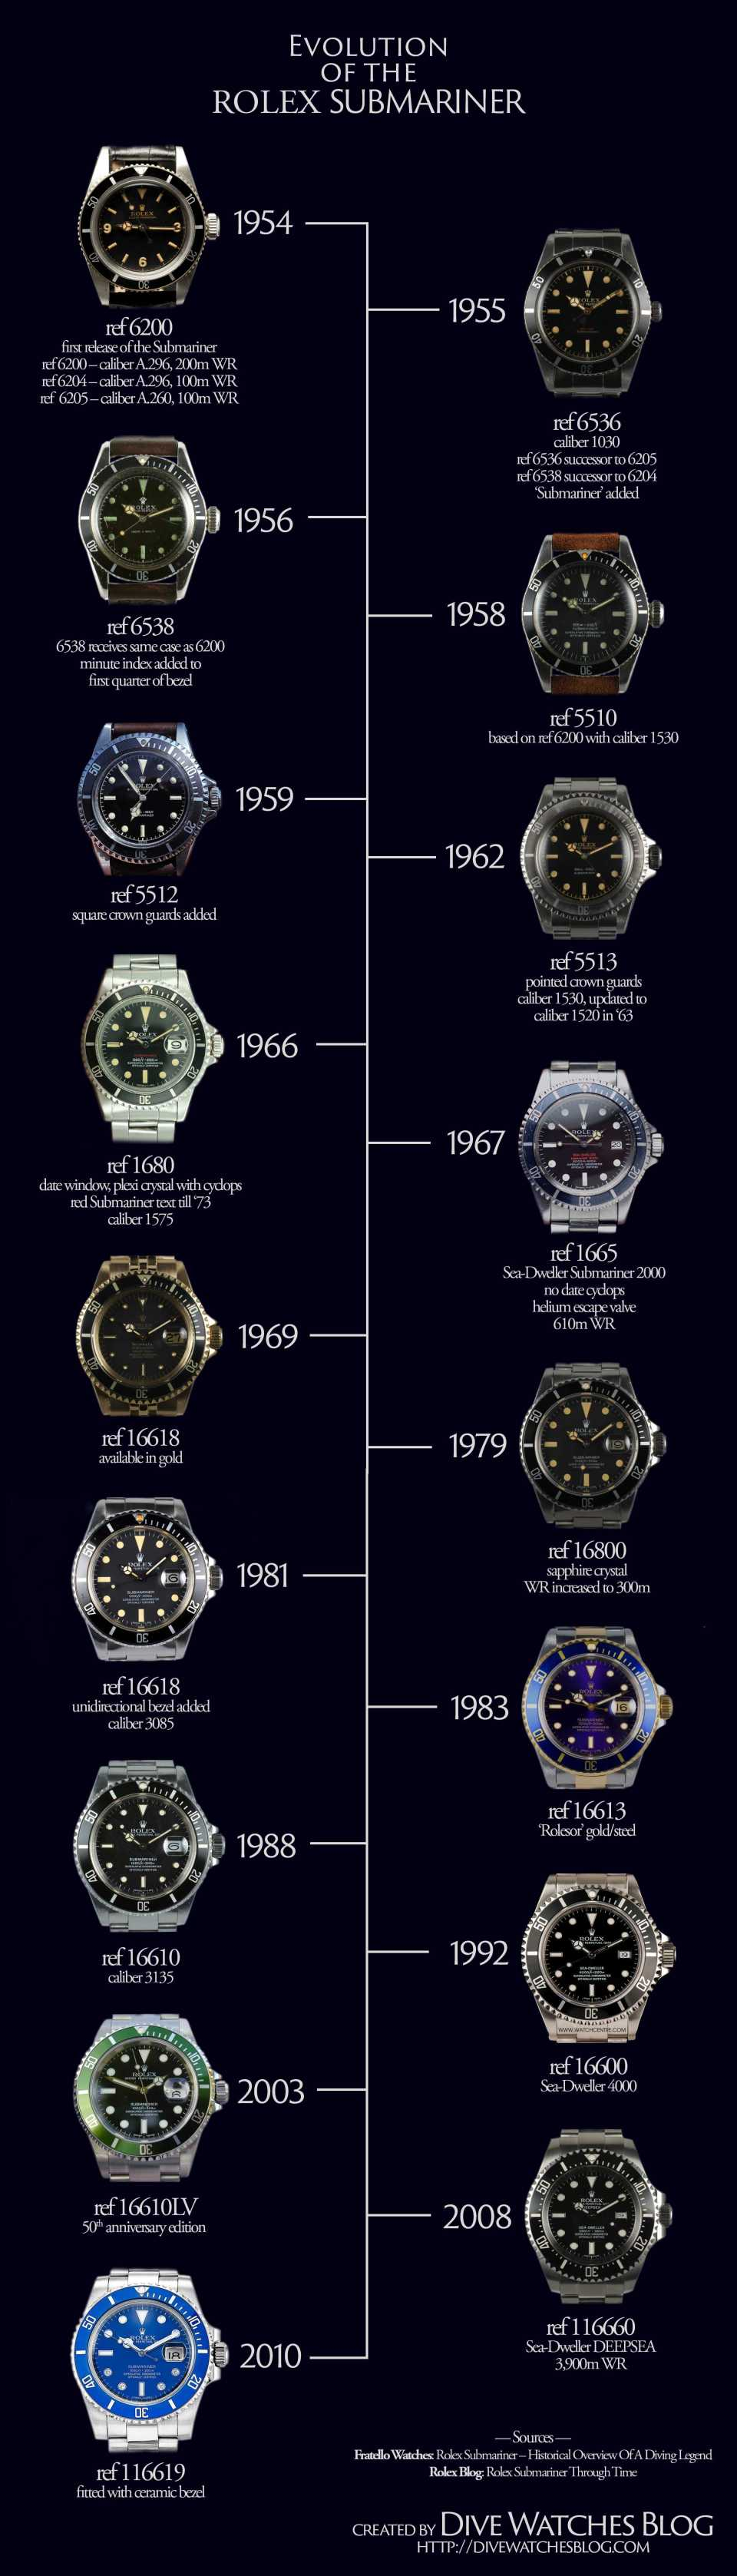 Evolution-of-the-Rolex-Submariner